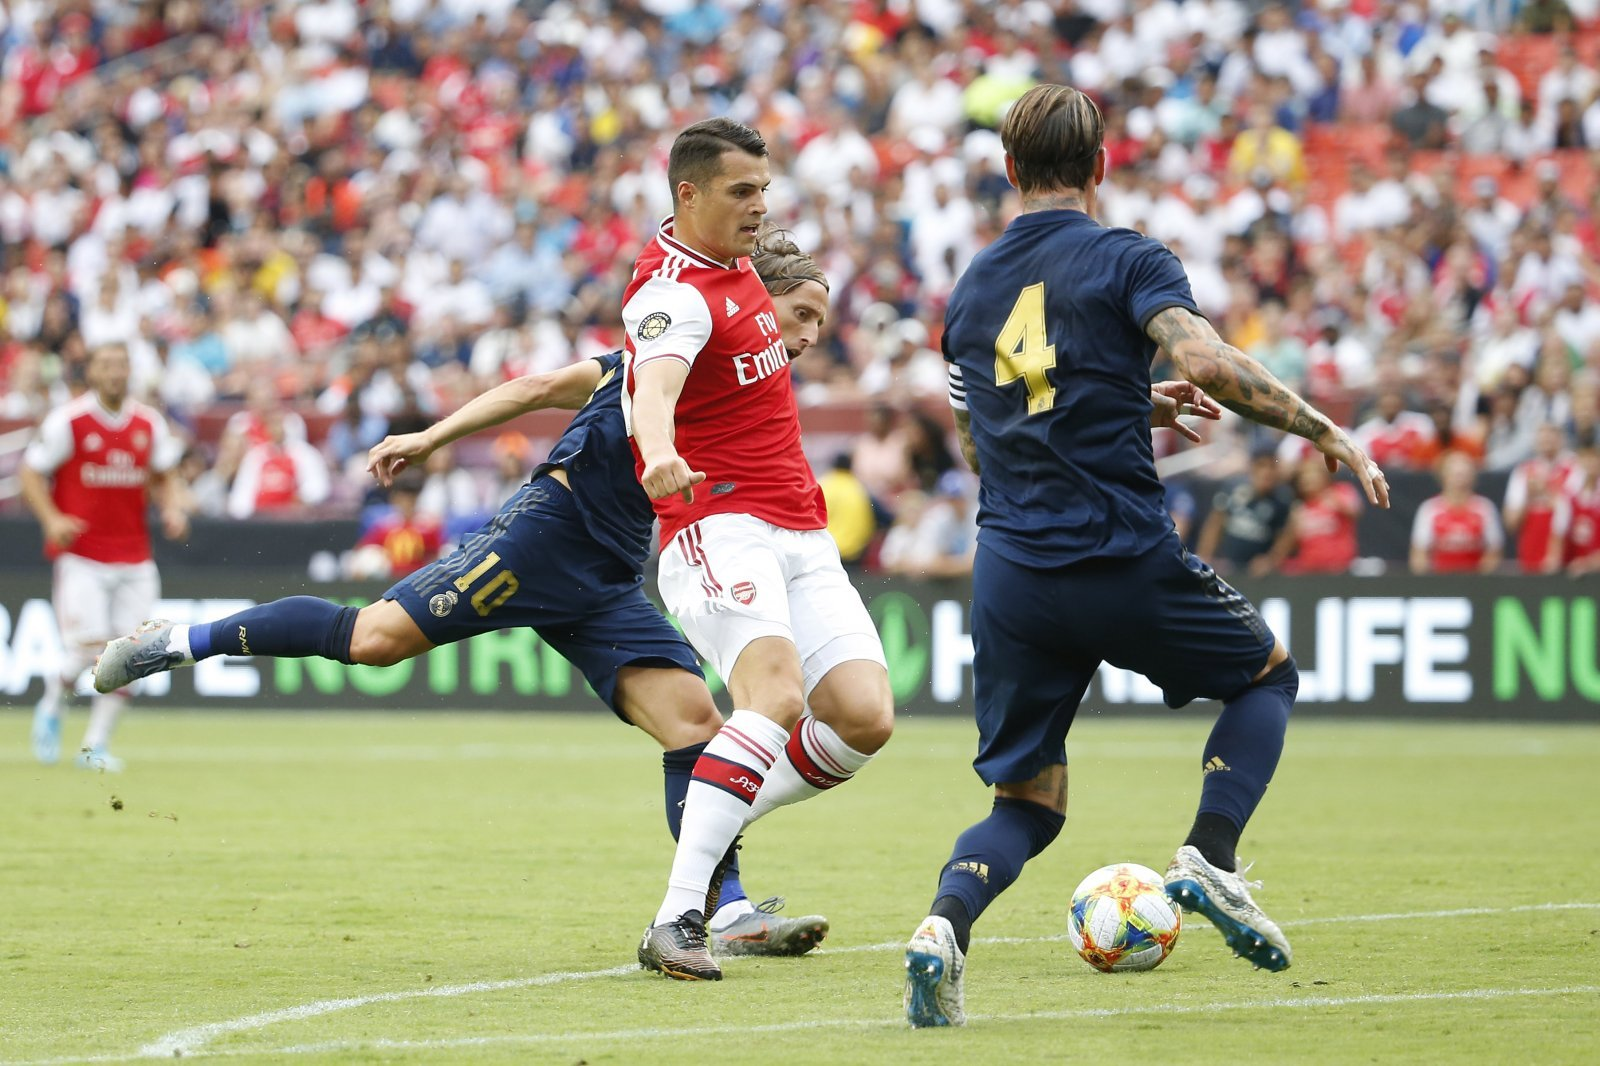 Arsenal: Granit Xhaka could return for clash versus Liverpool